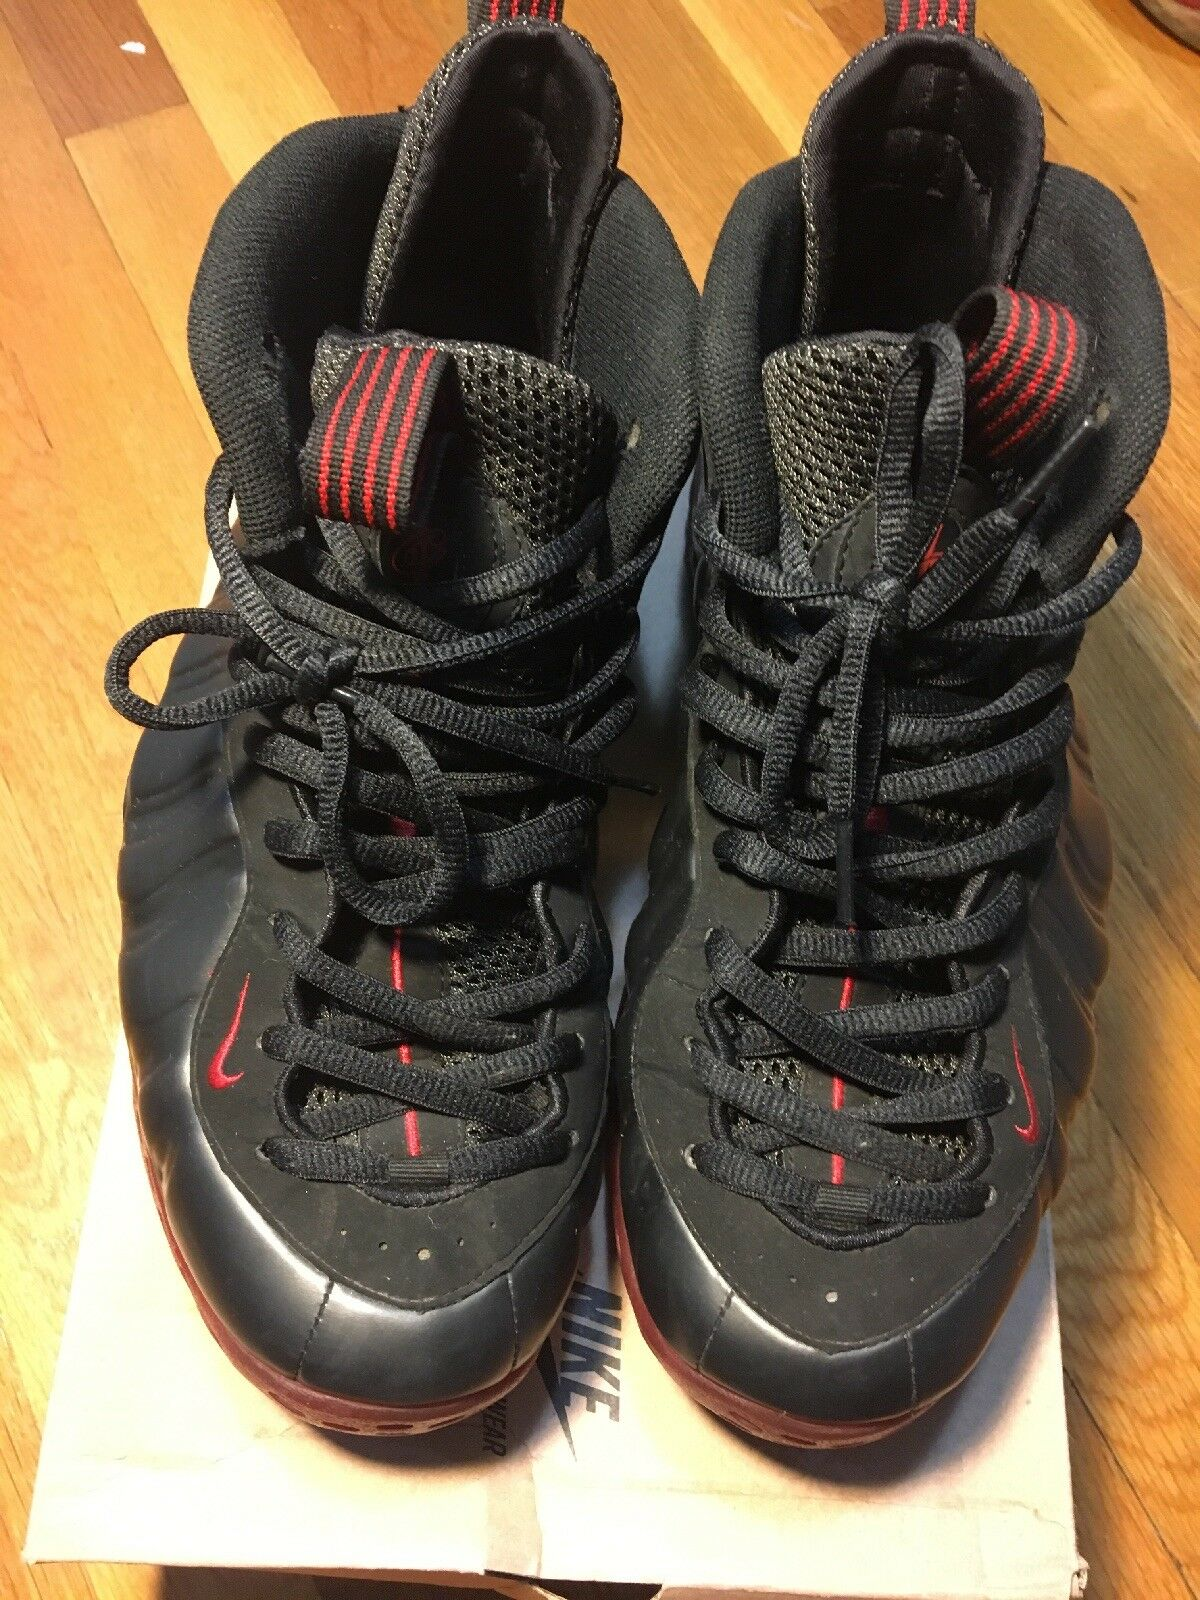 NIKE AIR FOAMPOSITE ONE  COUGH DROP  - SIZE 10.5 - 100% AUTHENTIC